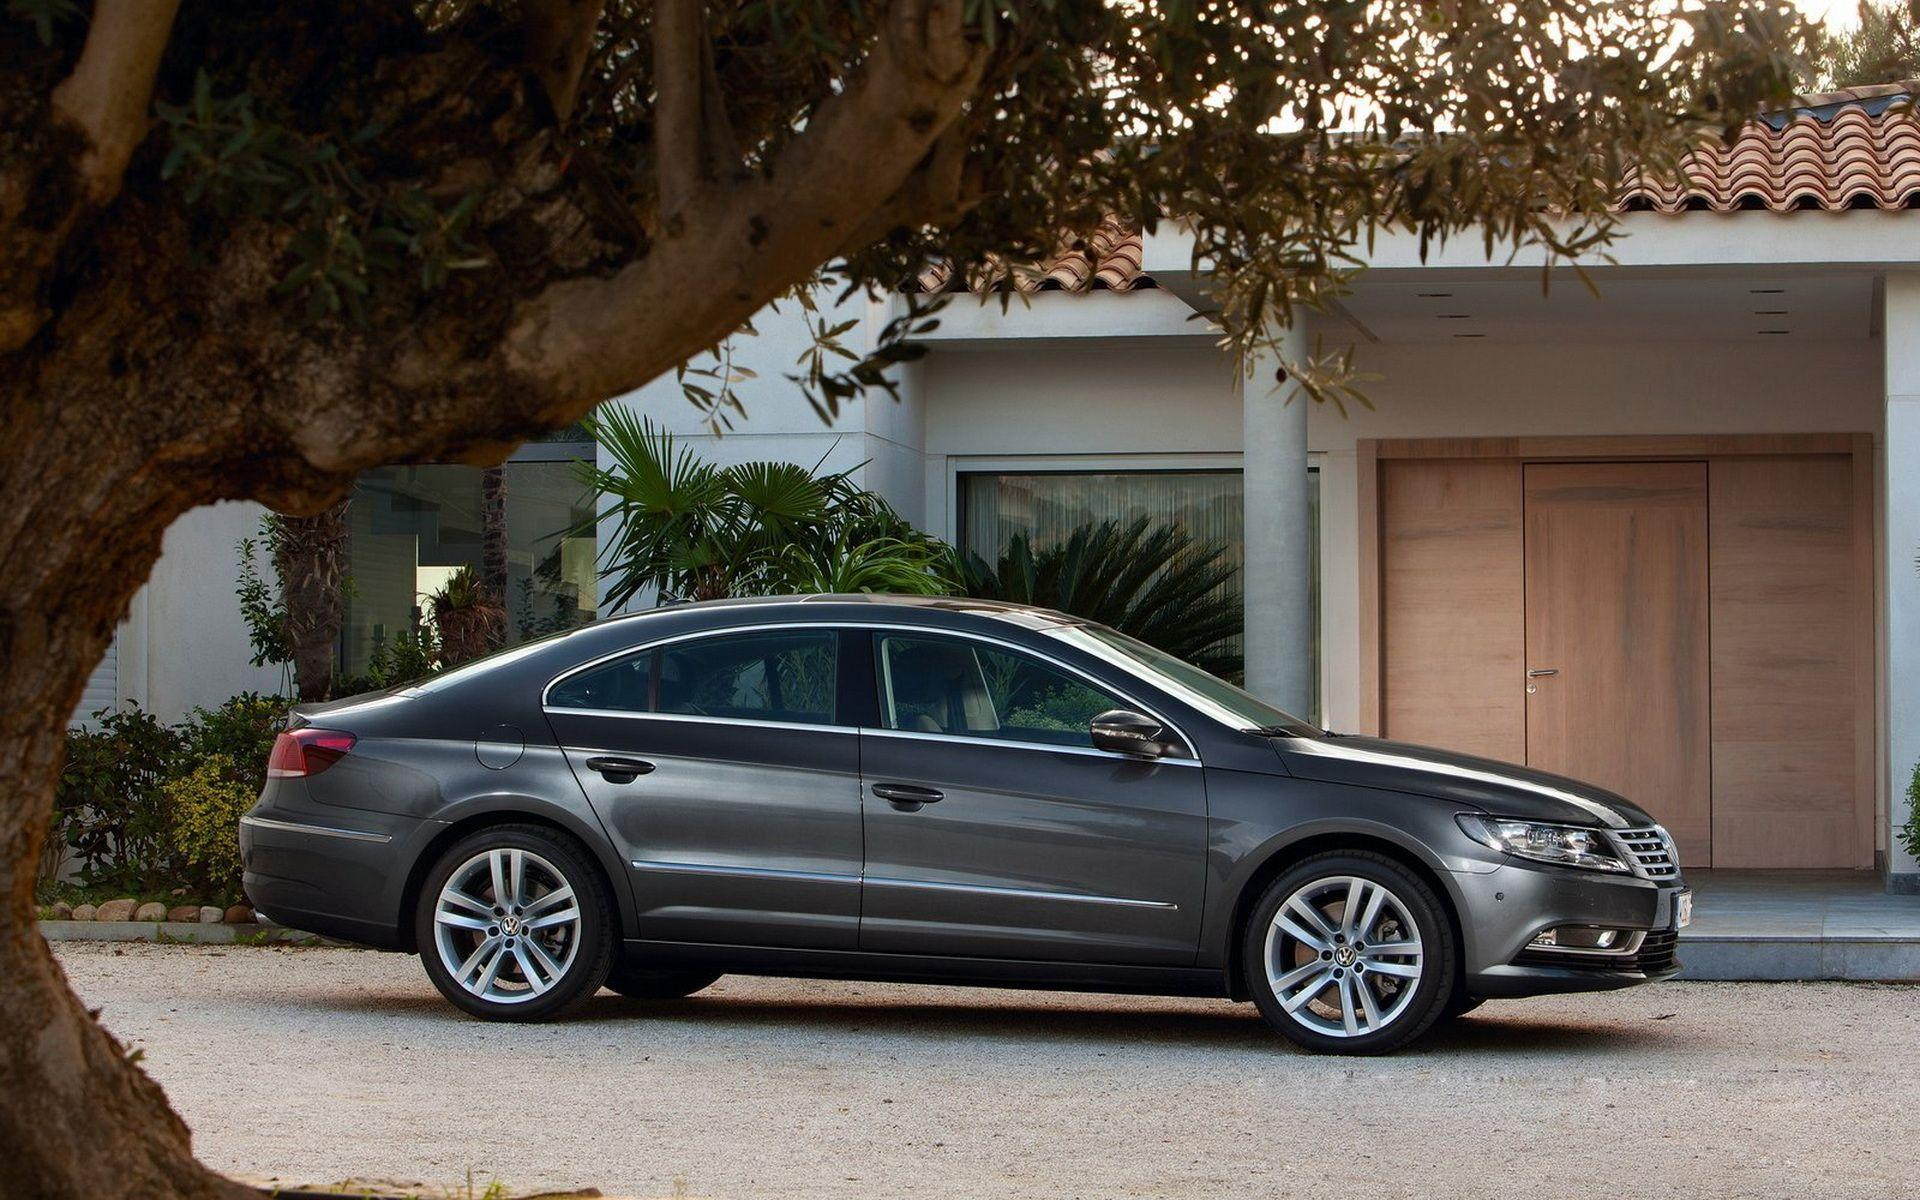 Volkswagen-Passat CC wallpapers and images - wallpapers, pictures ...